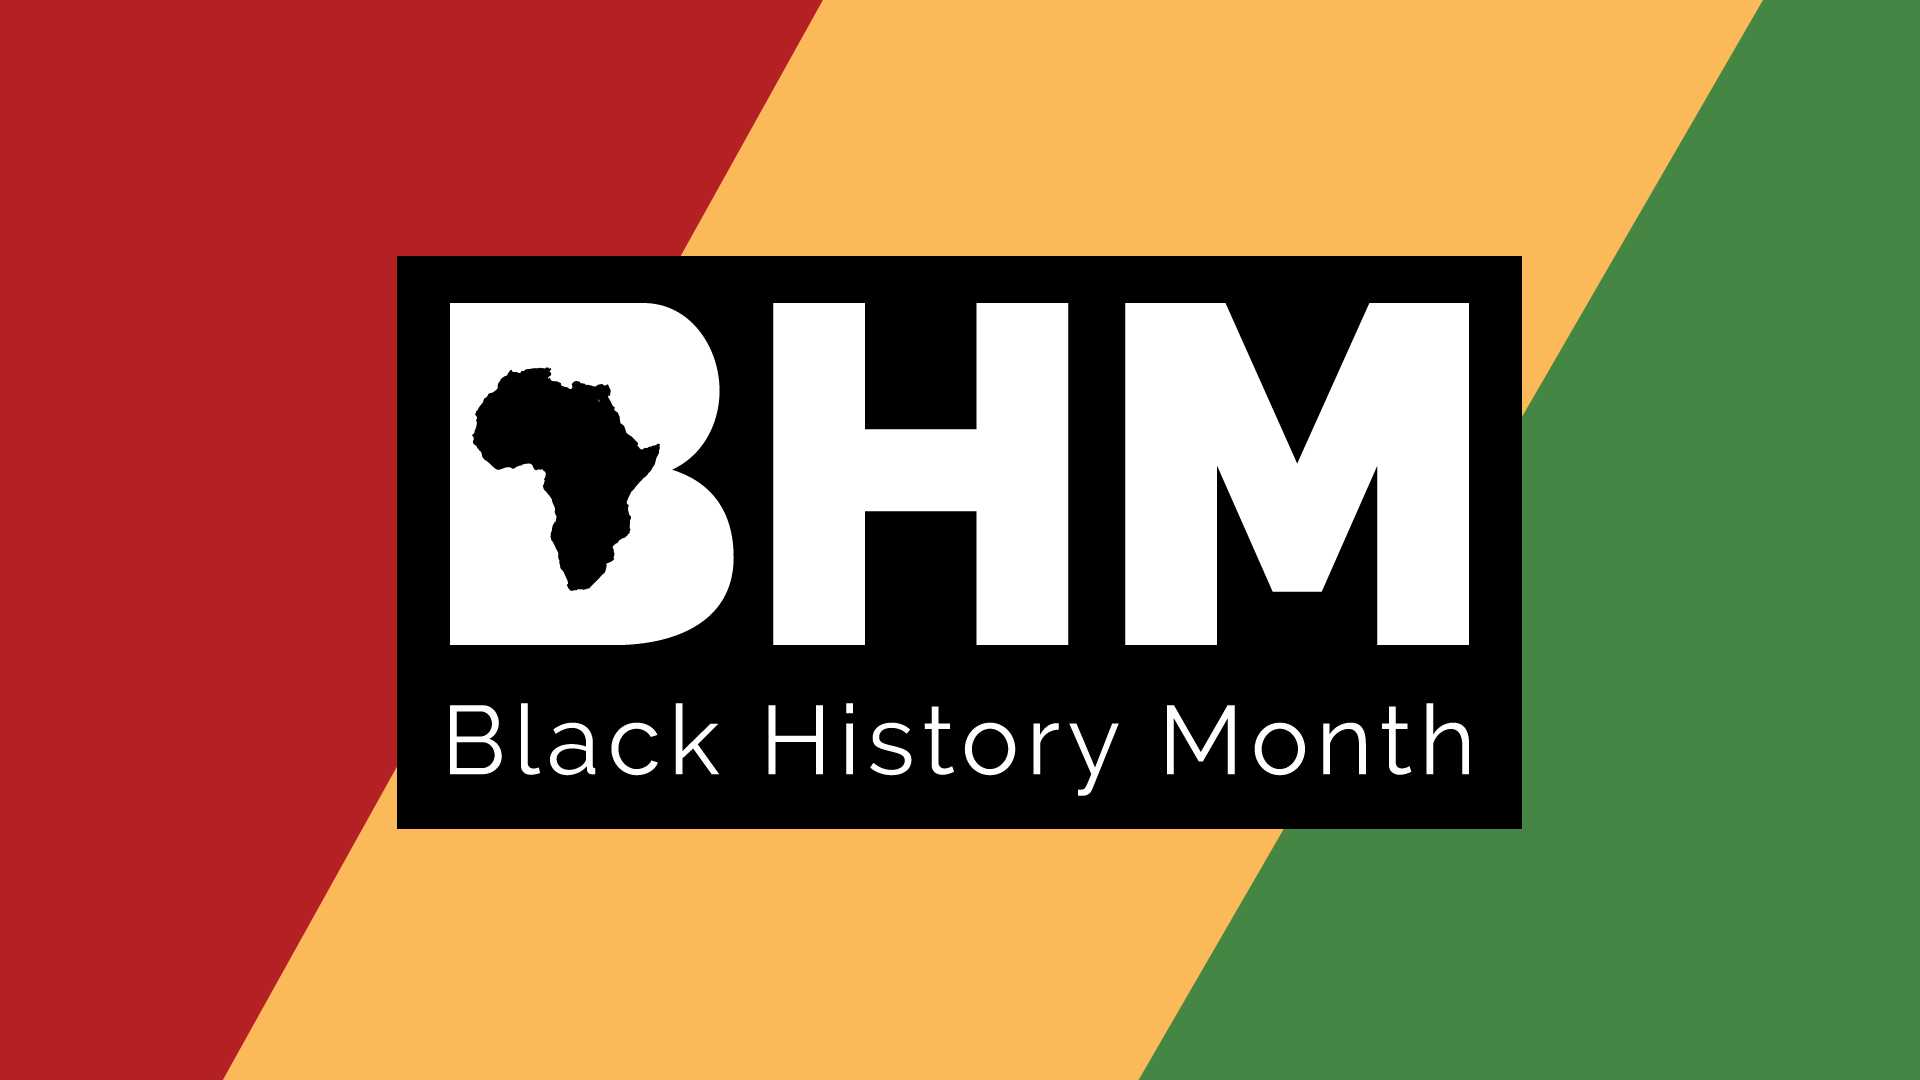 HD Black History Month Wallpaper 1